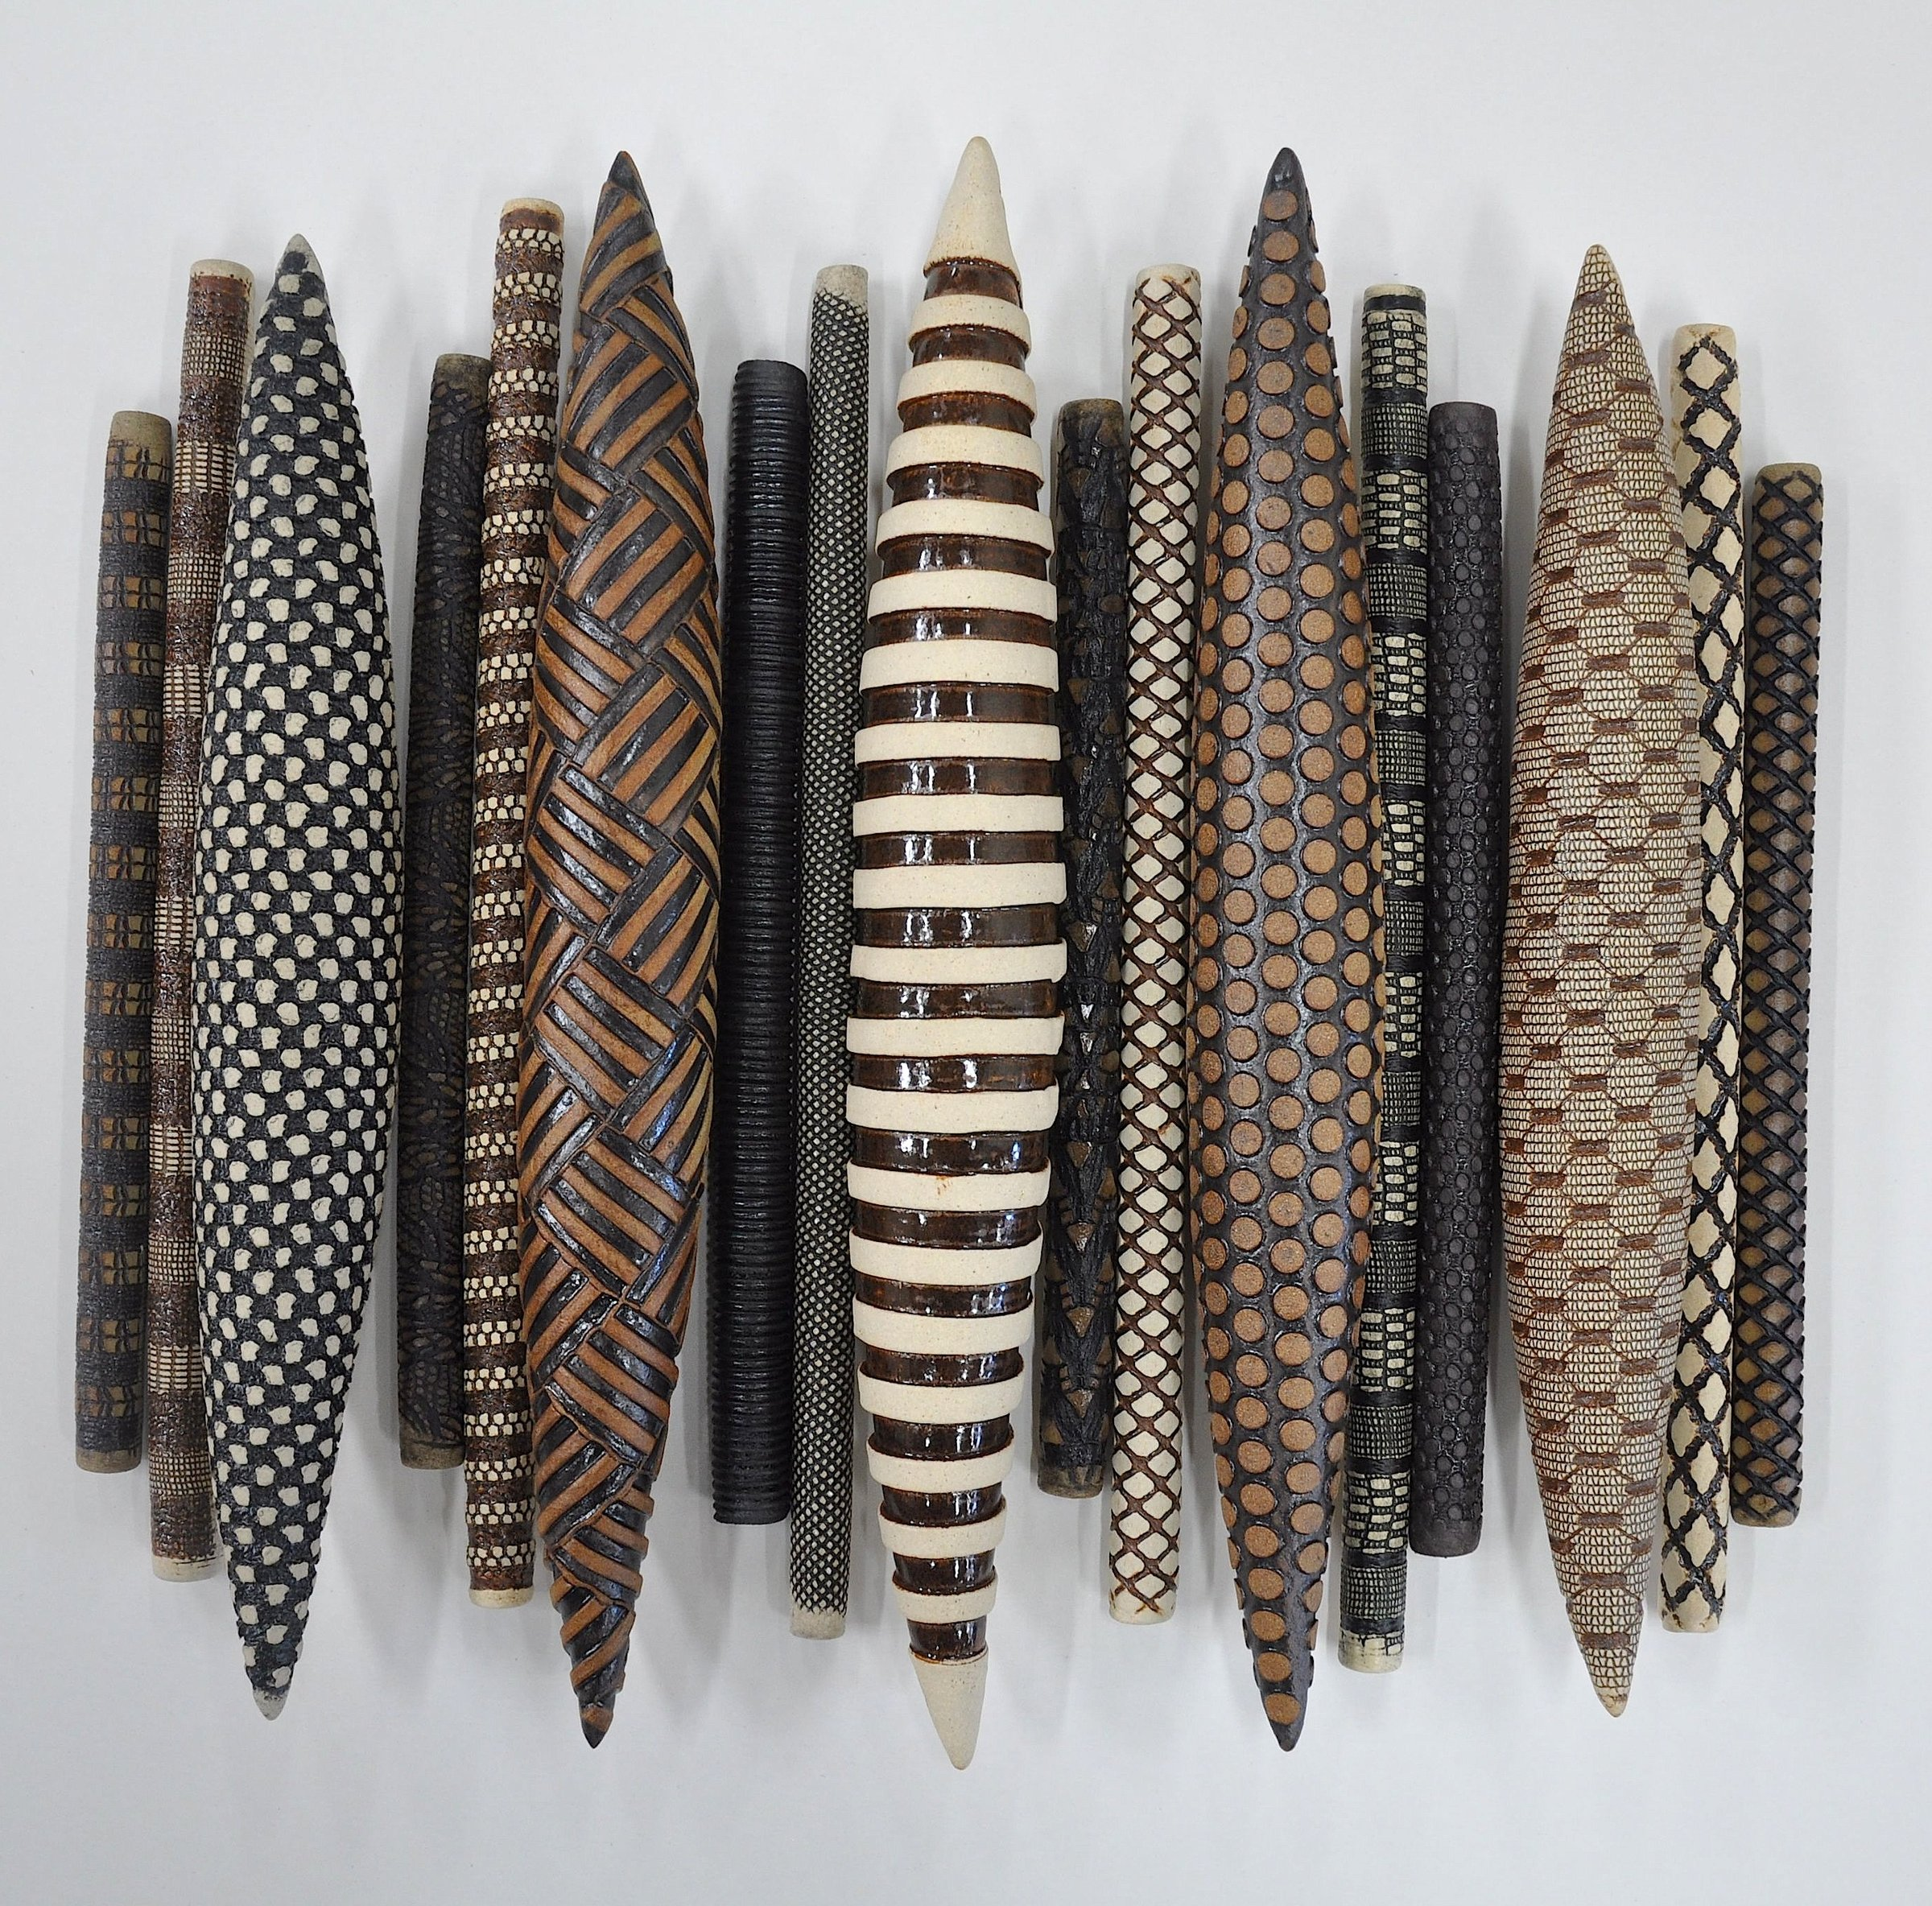 Exceptionnel Domestic Markings 17 By Kelly Jean Ohl (Ceramic Wall Sculpture) | Artful  Home